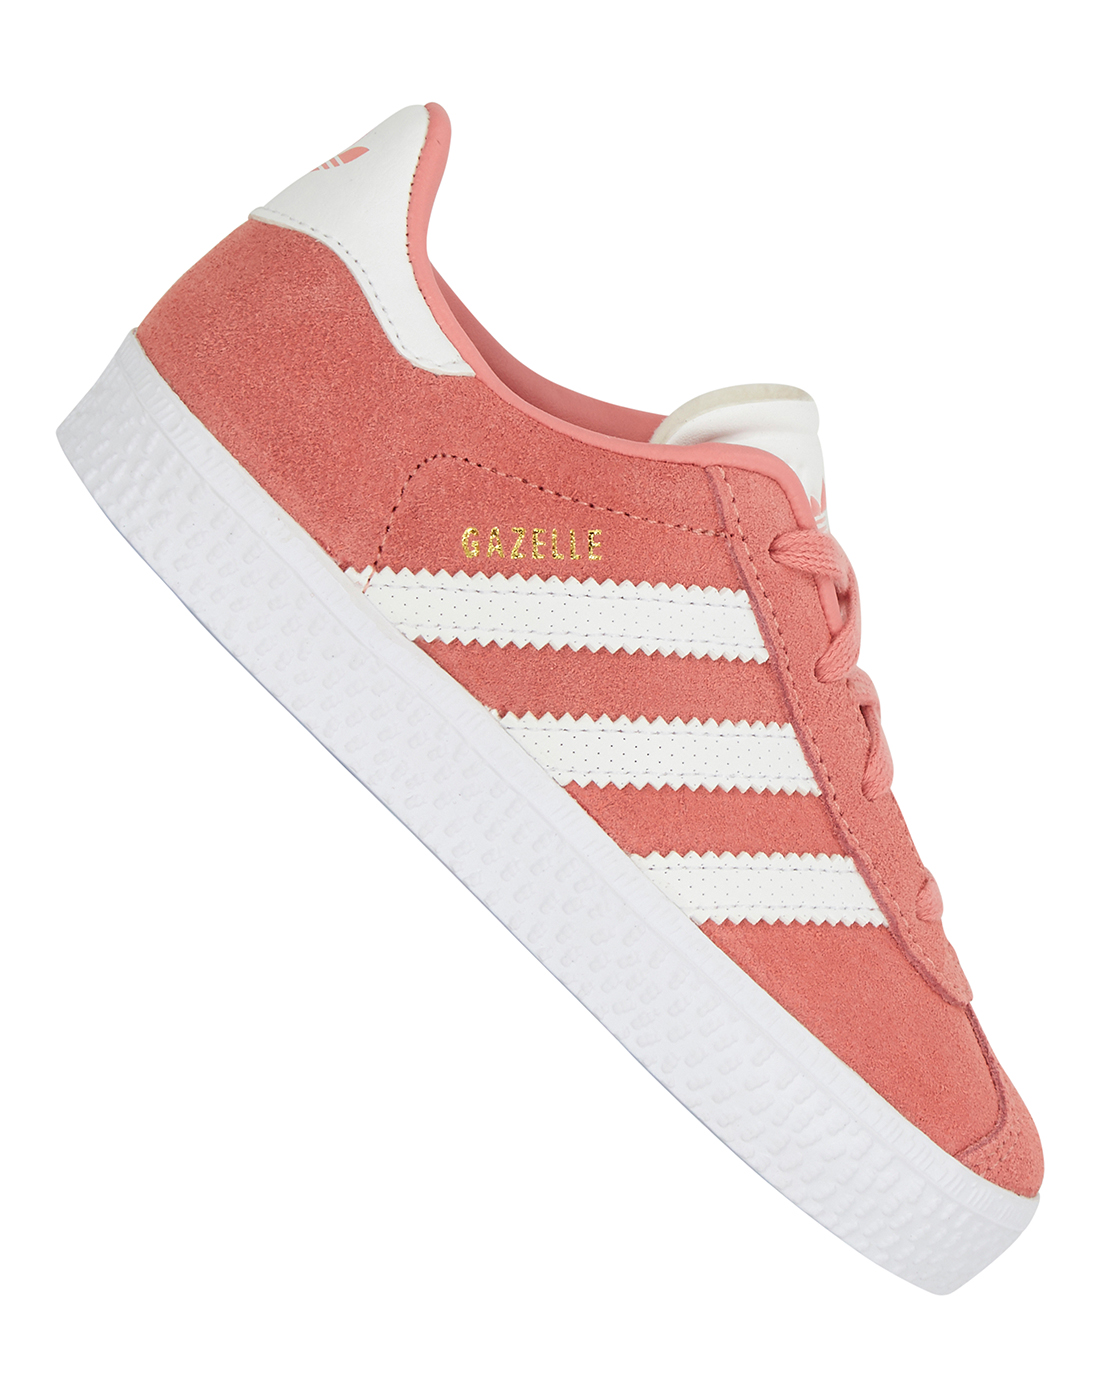 cheaper f99aa 43bf2 adidas Originals. Infant Girls Gazelle. Infant Girls Gazelle ...